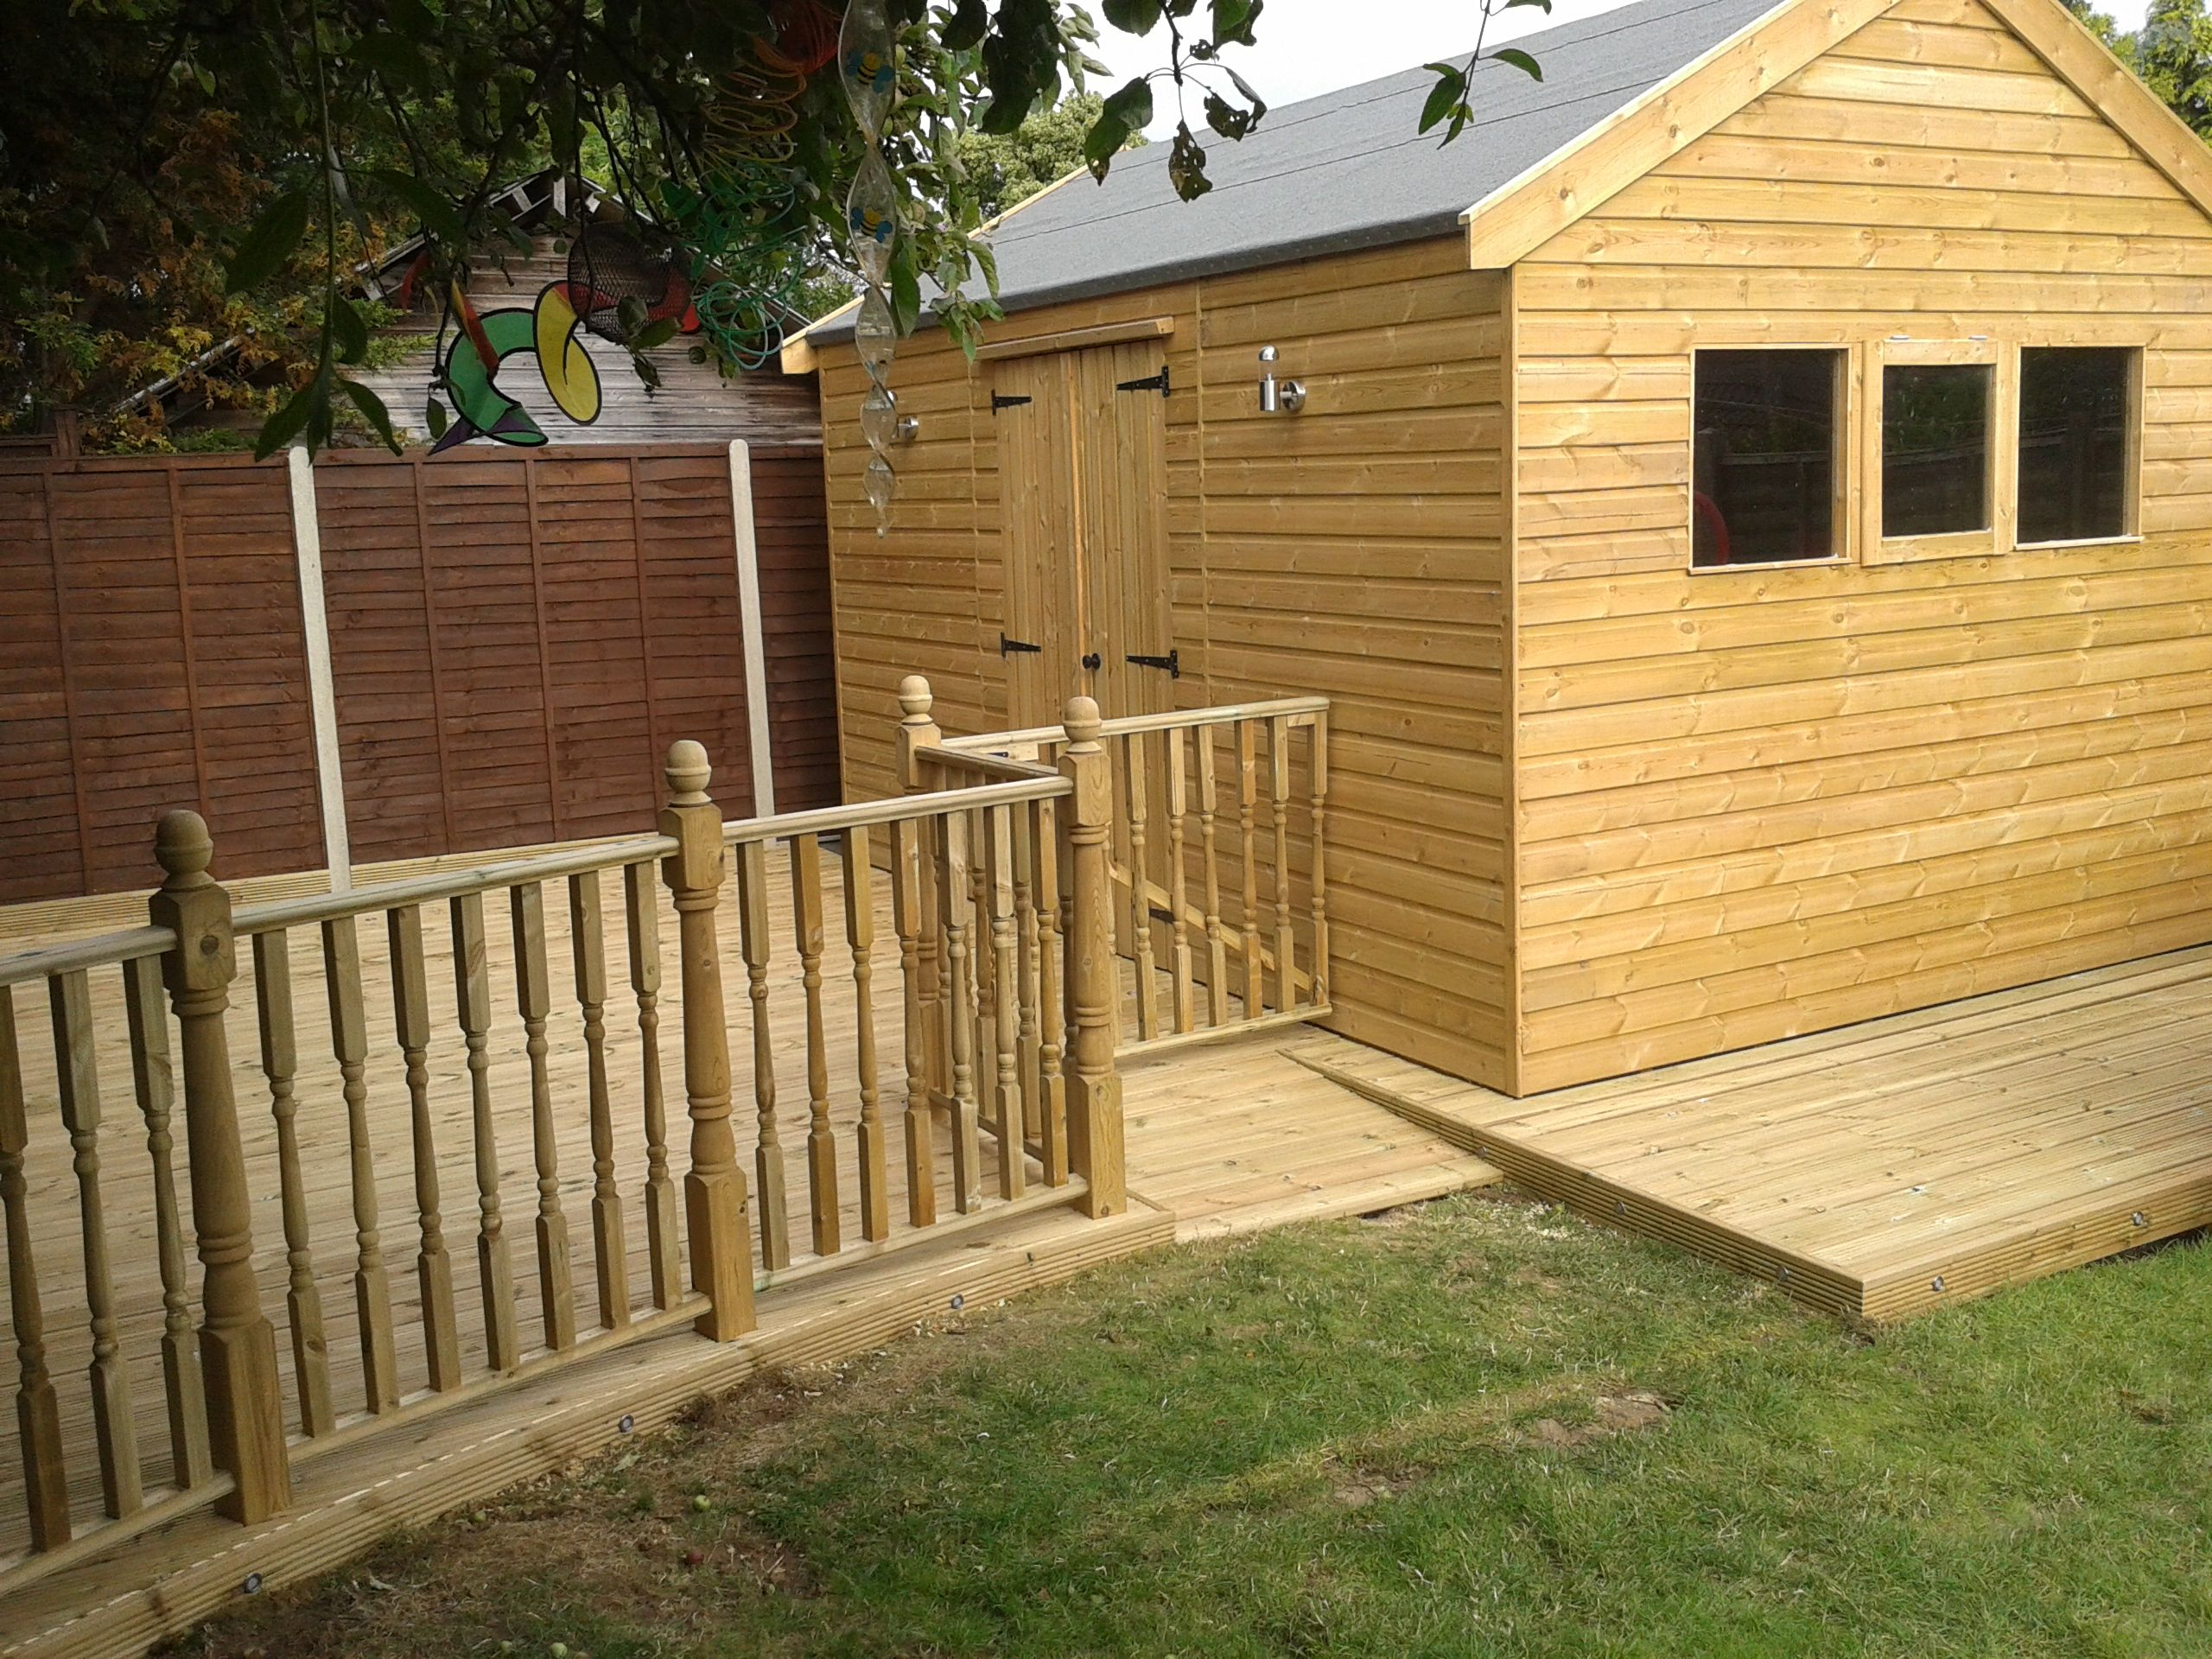 15ft X 12ft Garden Workshop With Decking Area Garden Buildings Garden Workshops Decking Area